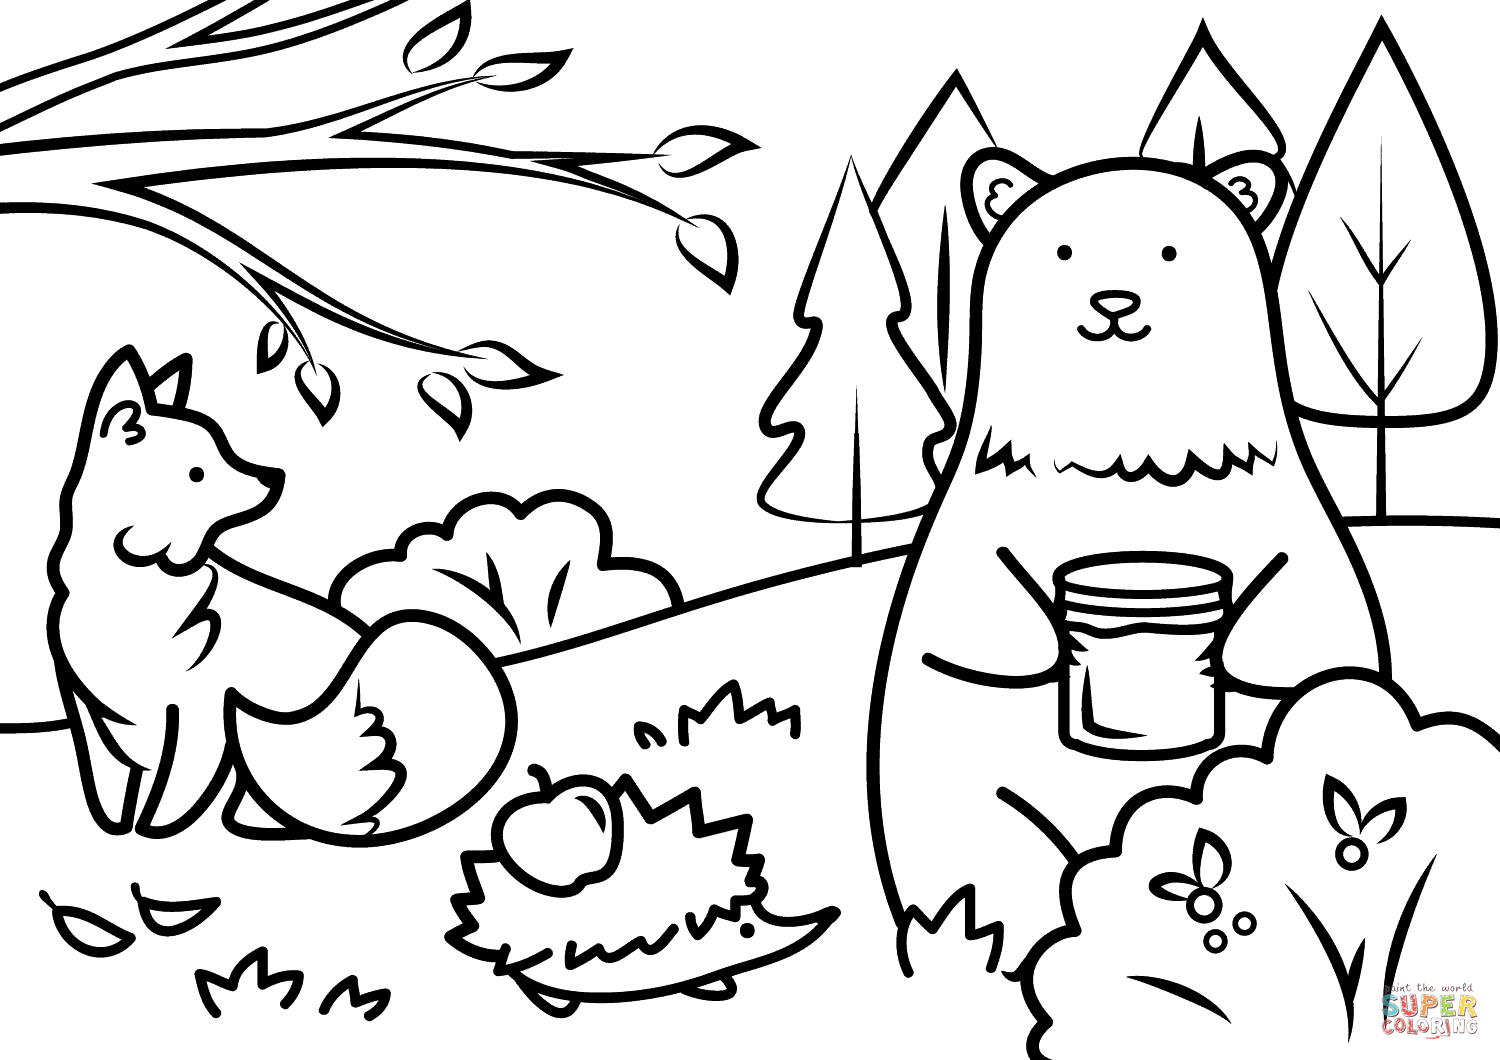 Autumn Animals Coloring Page | Free Printable Coloring Pages - Free Printable Fall Coloring Pages